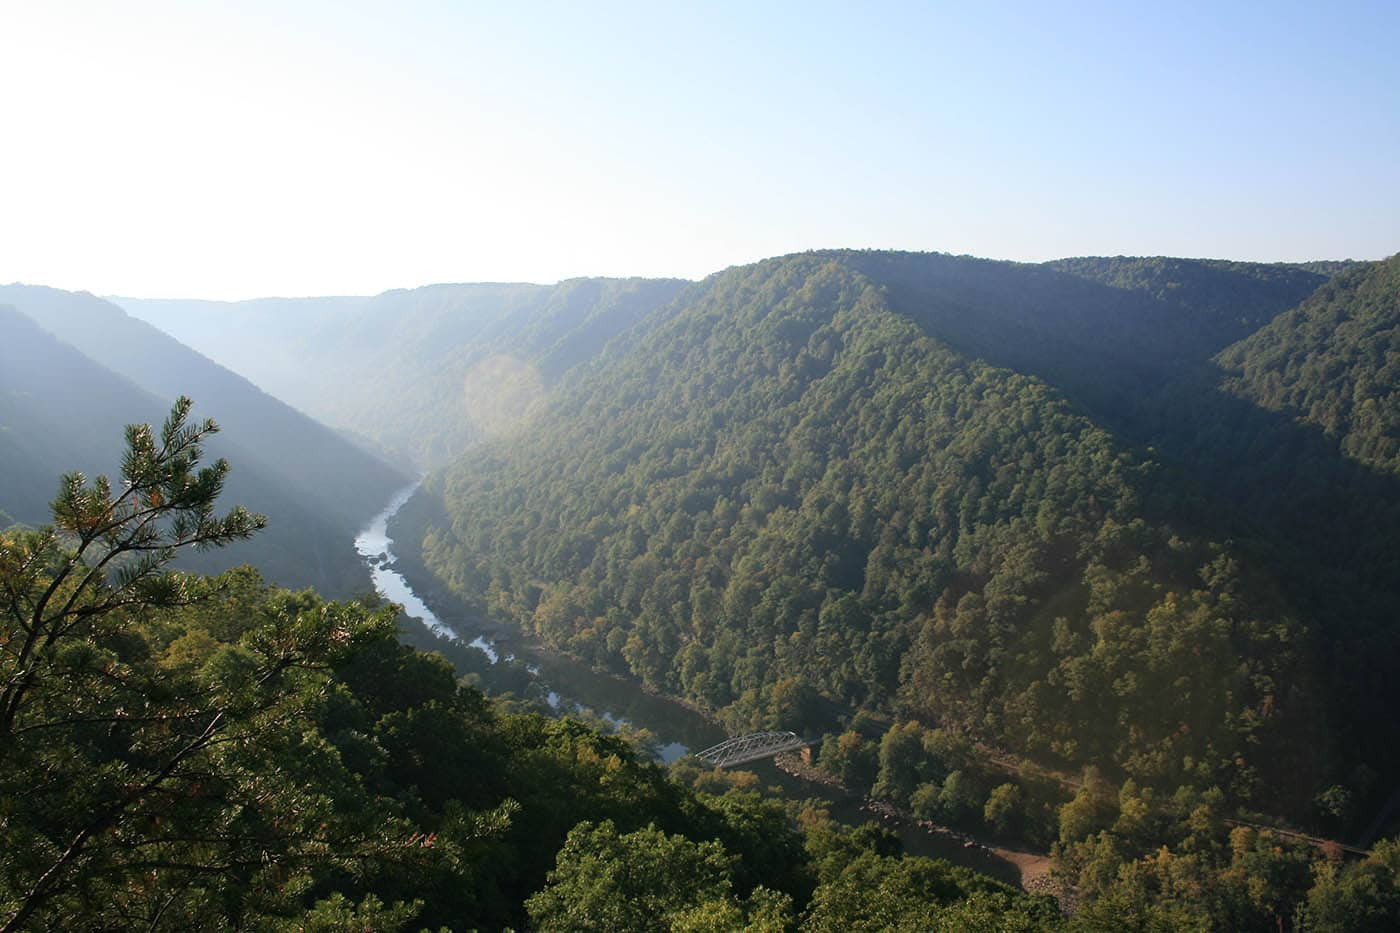 The New River in West Virginia